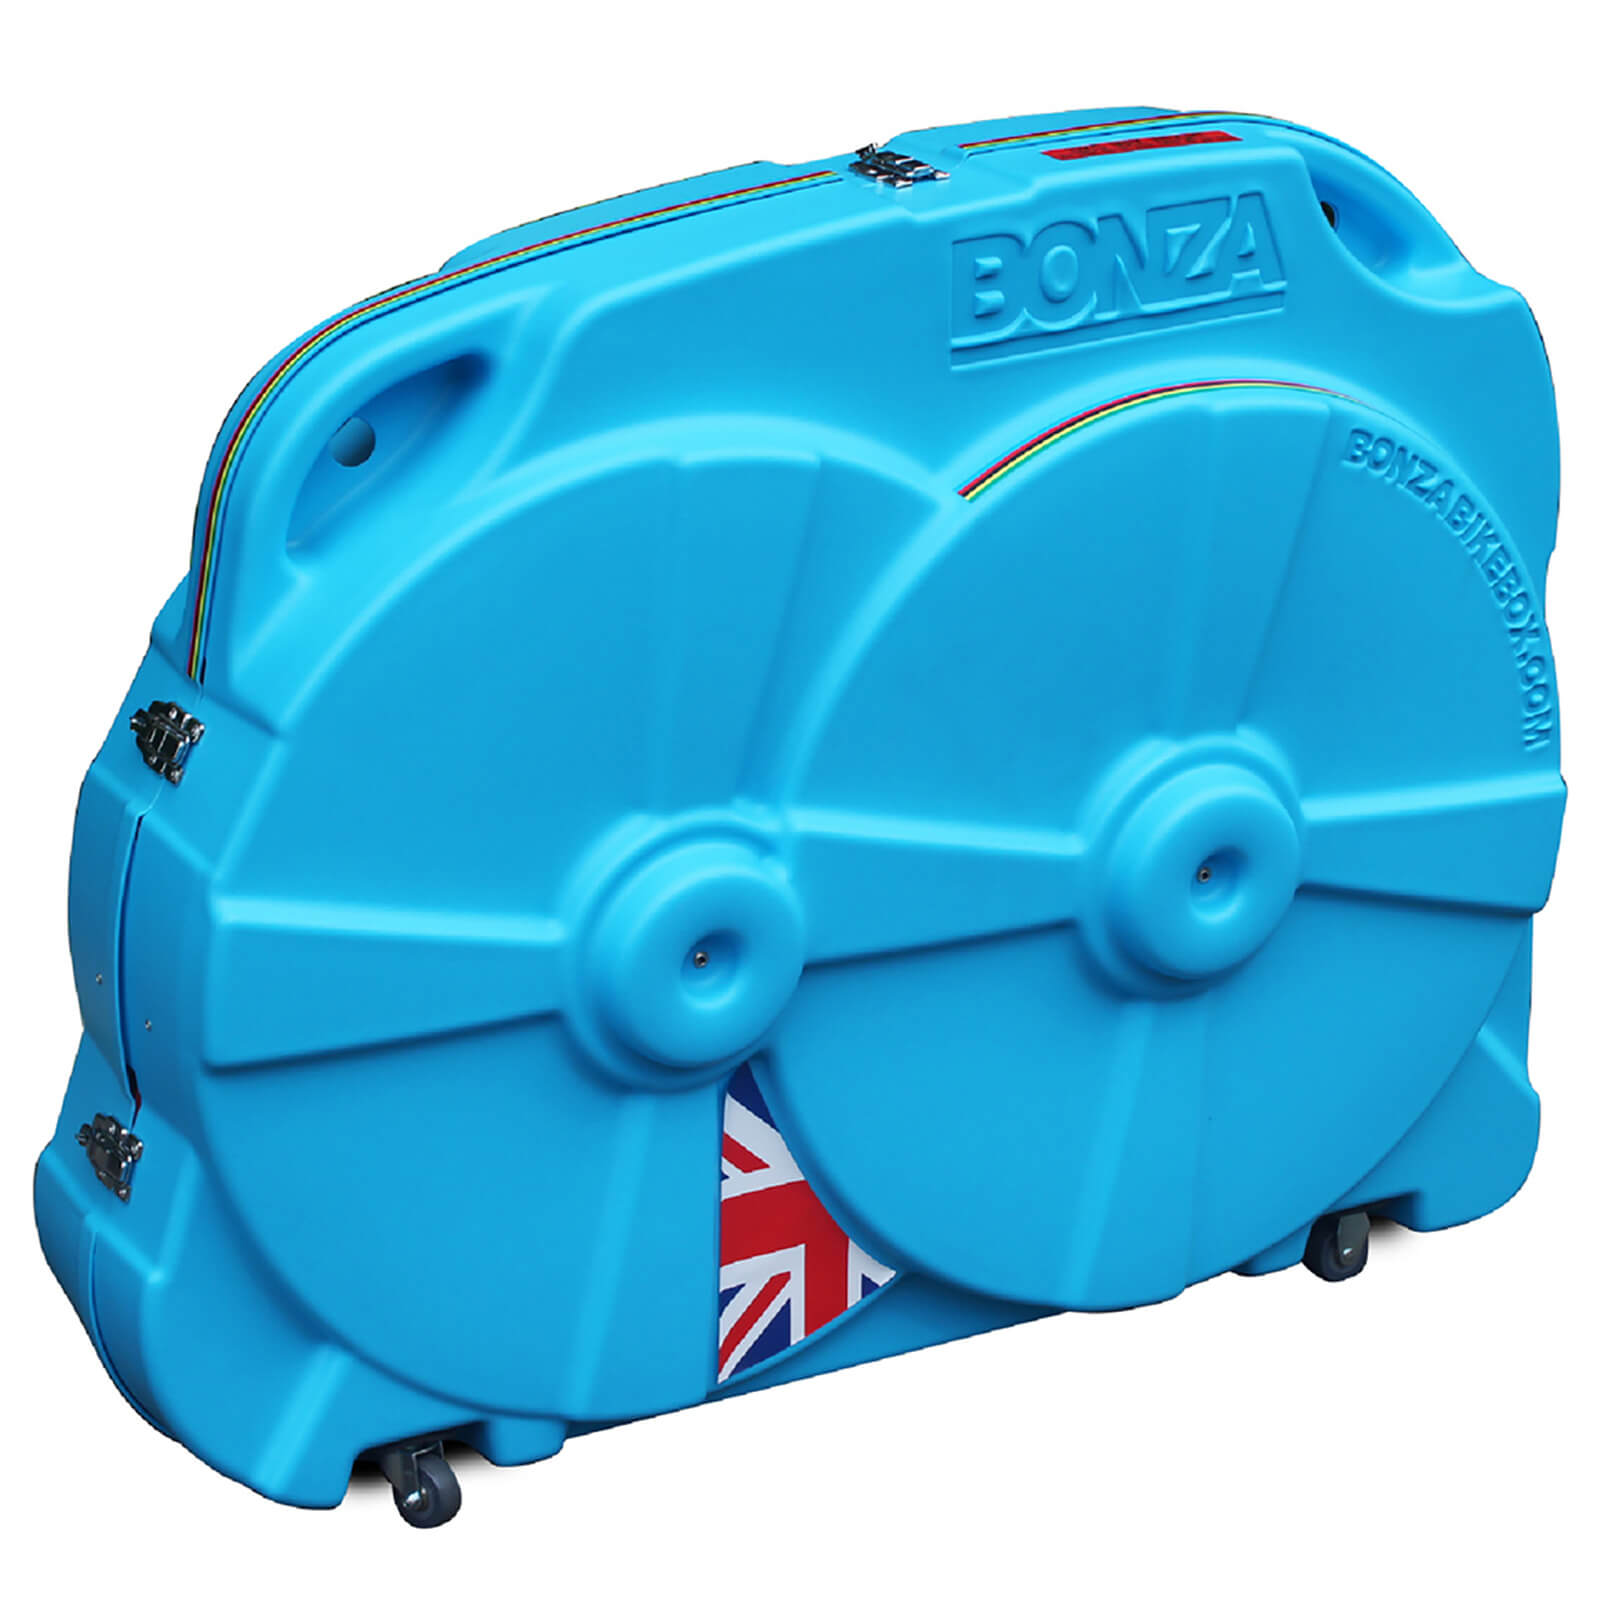 Bonza Hard Bike Travel Case - Blue